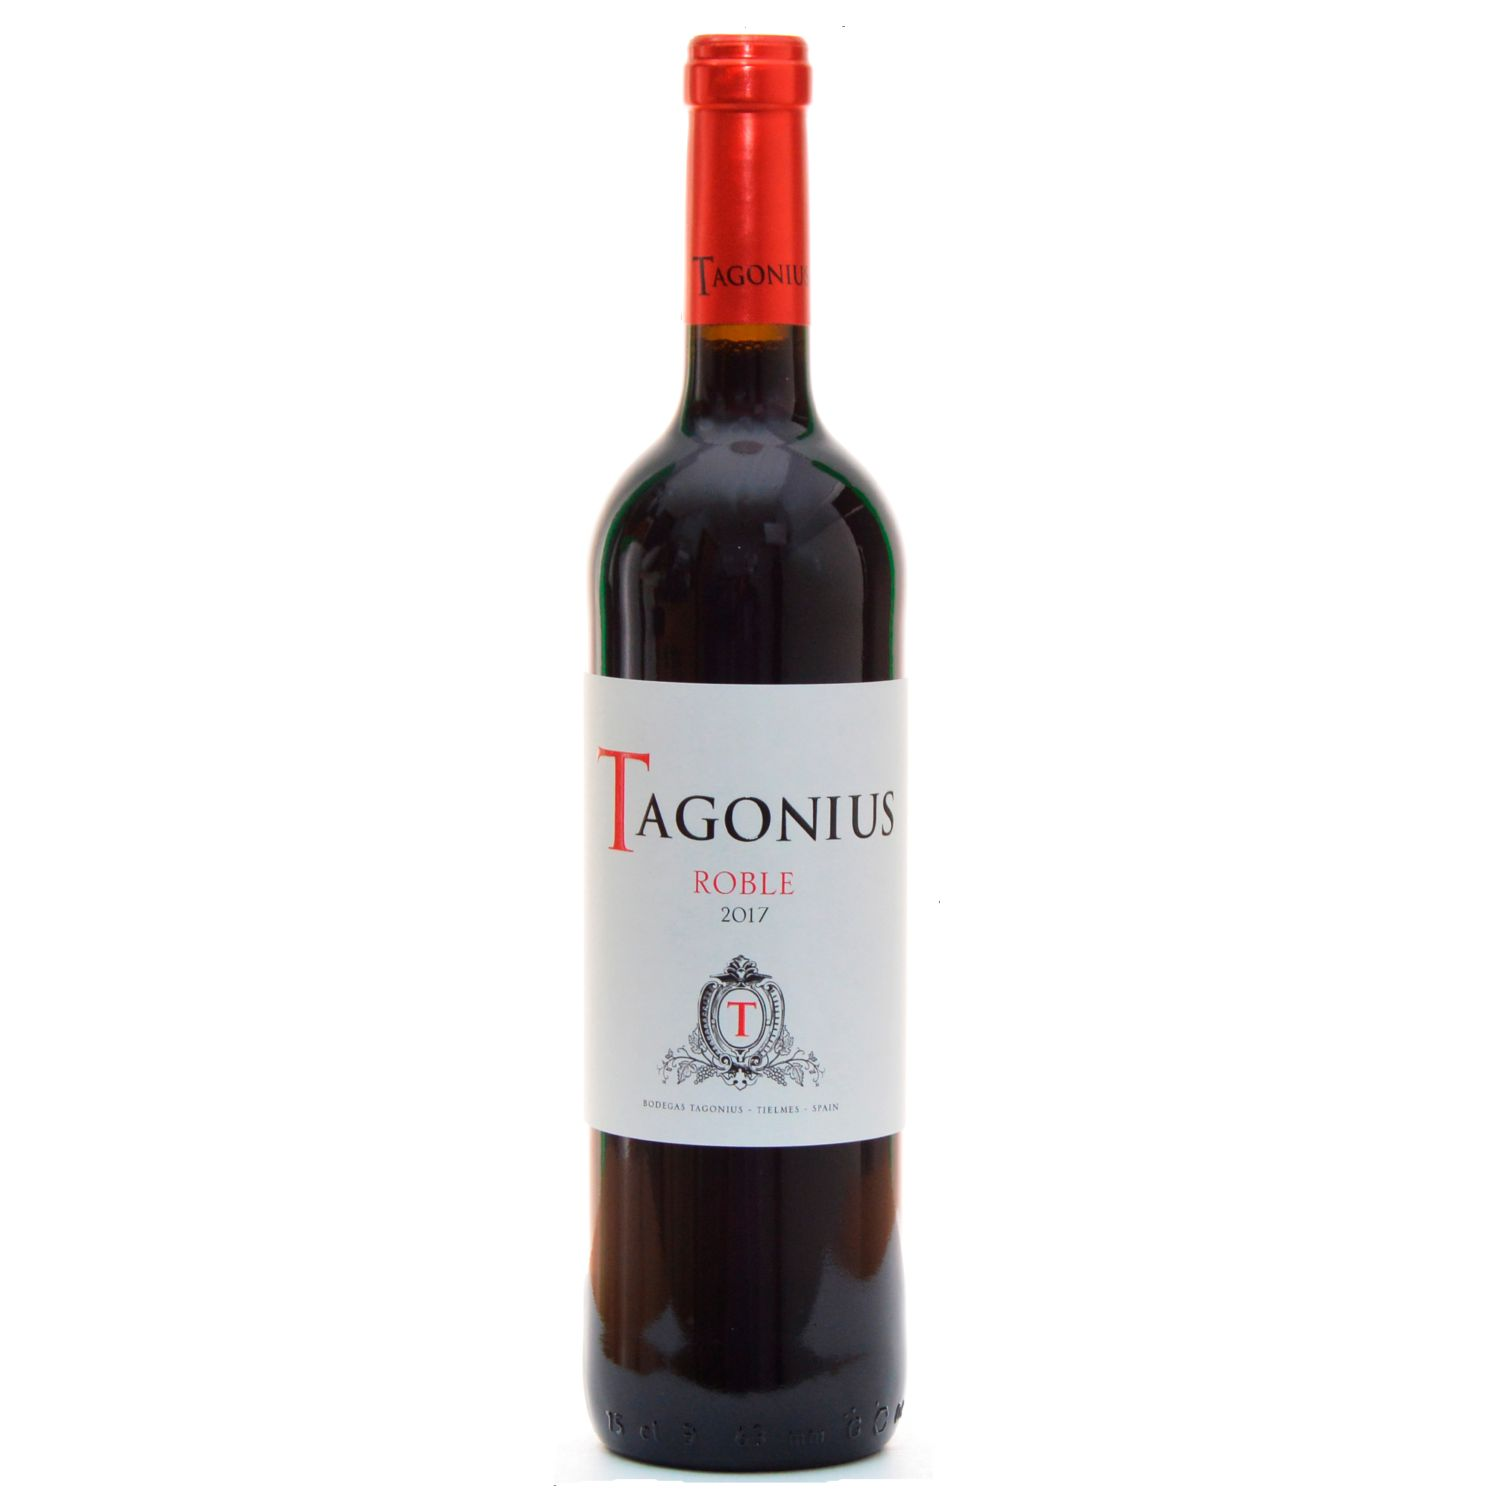 Vino Tagonius Roble